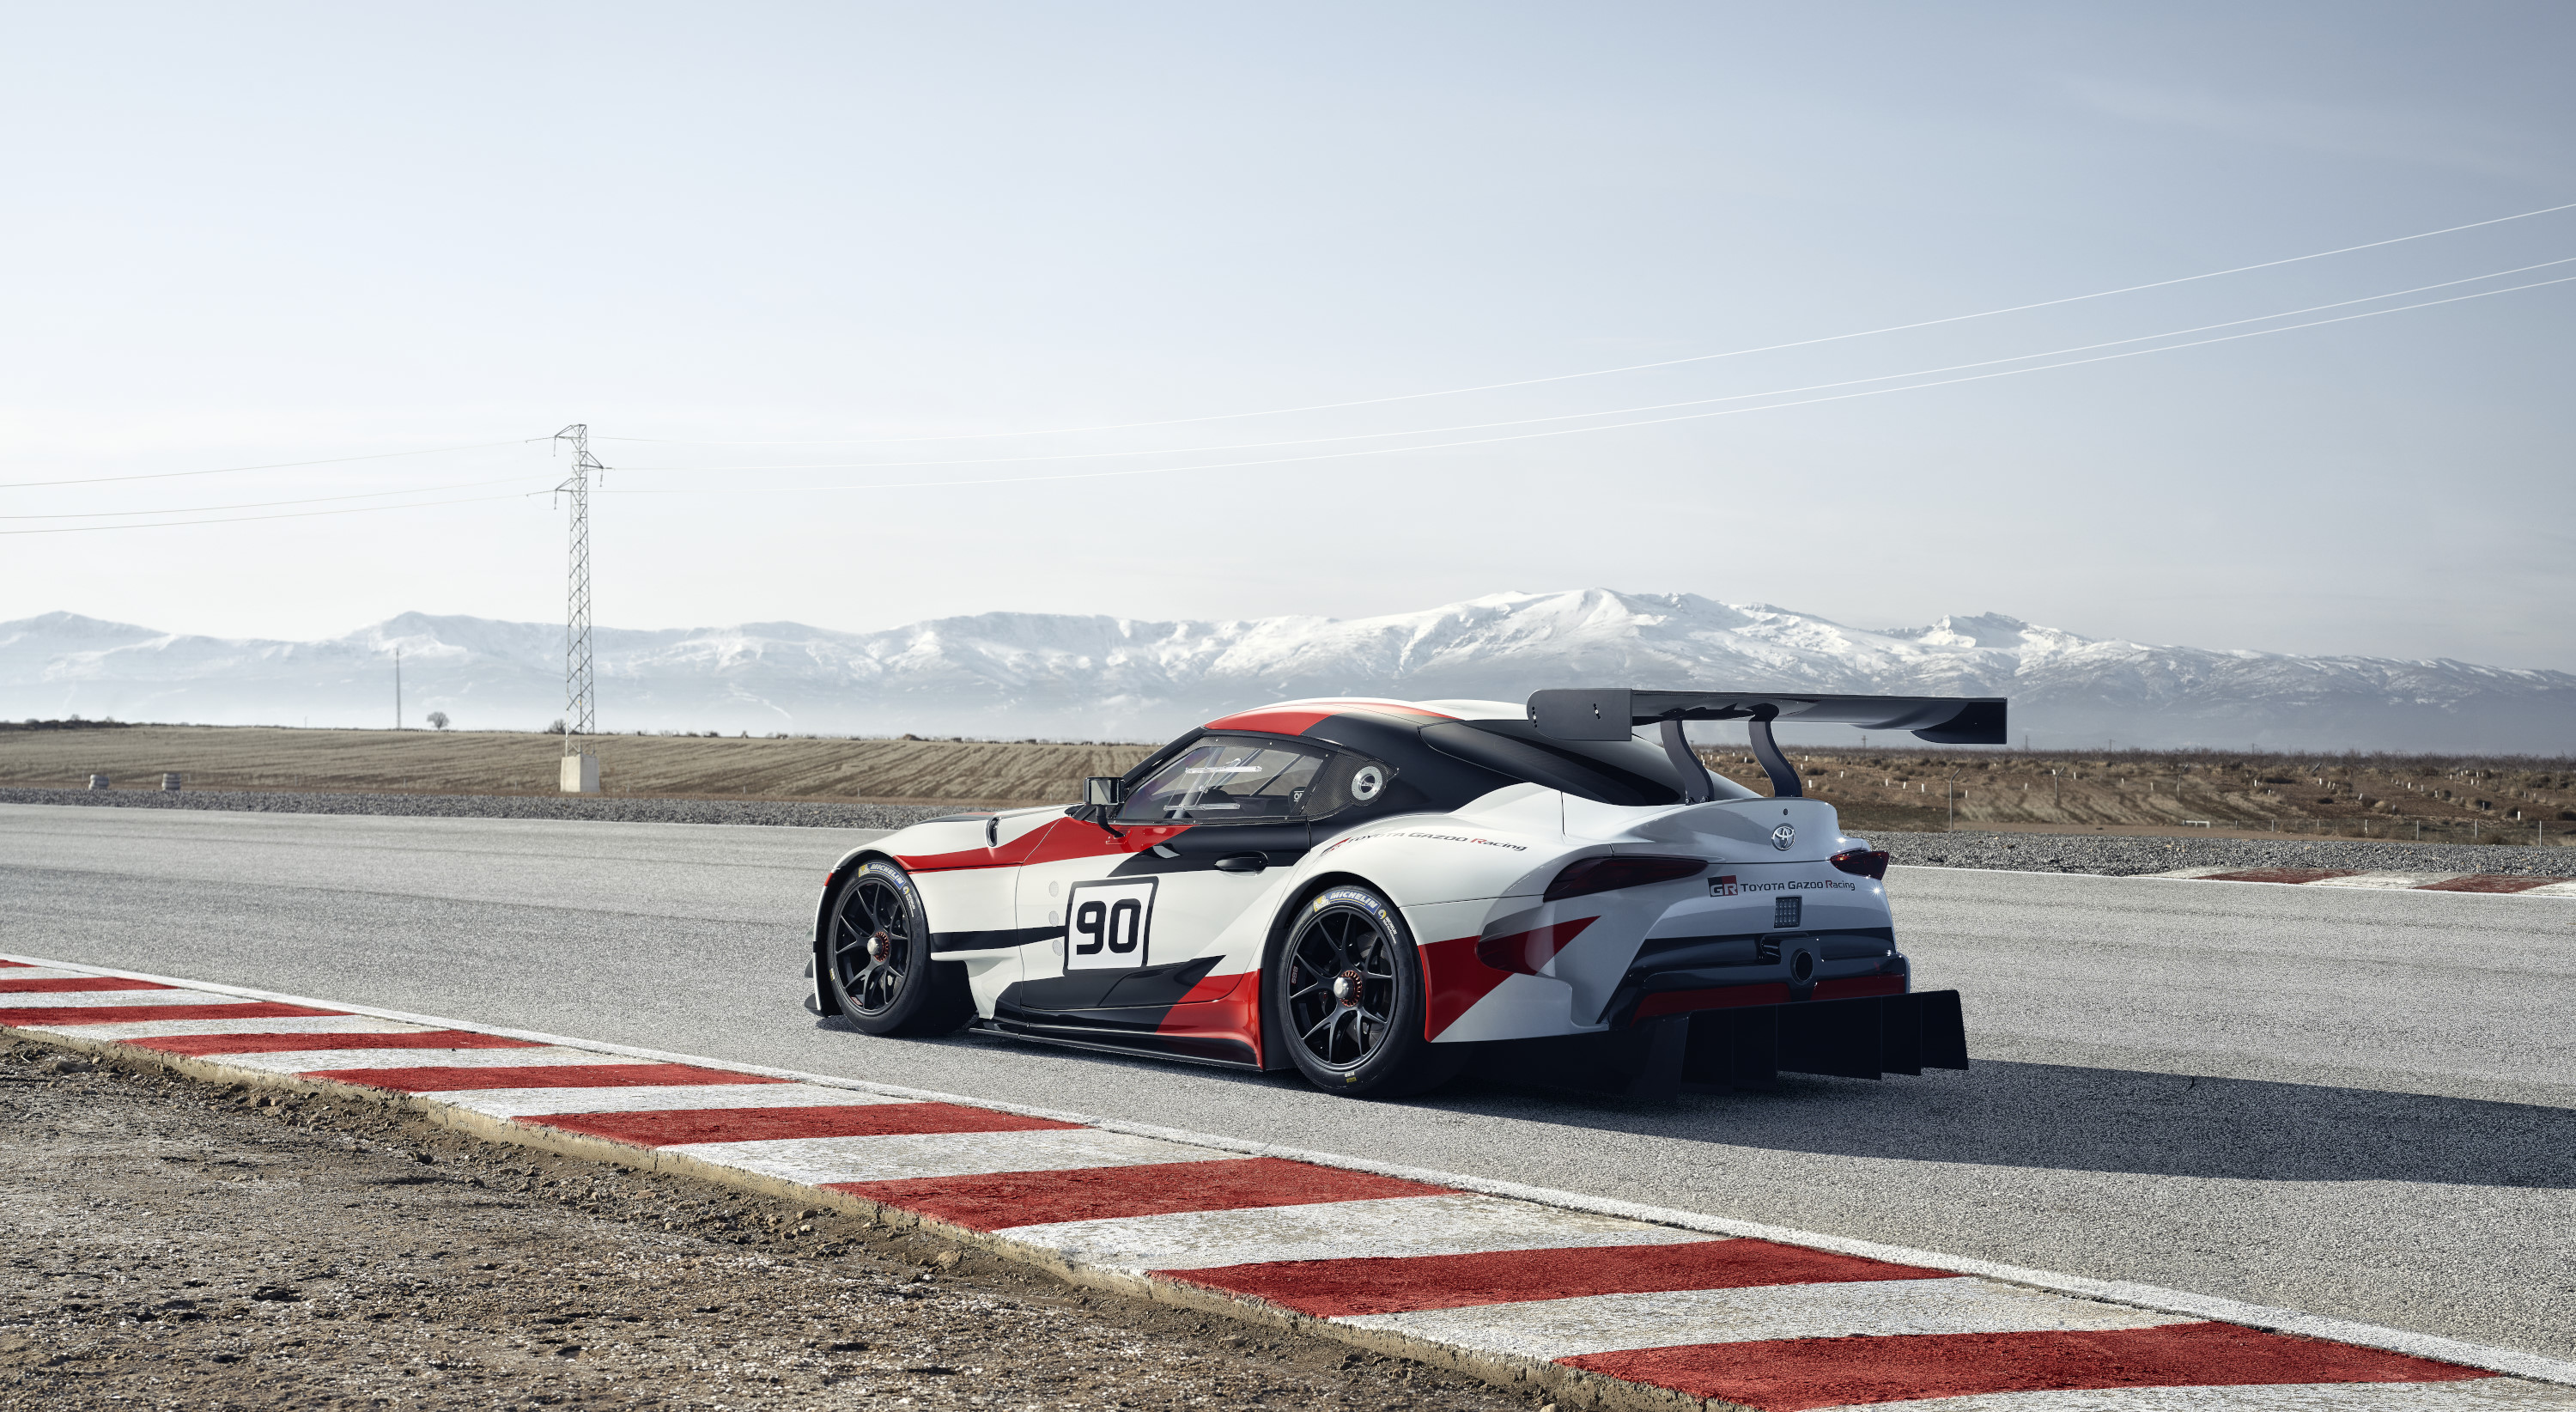 Toyota Supra racing concept rear 3/4 on the track